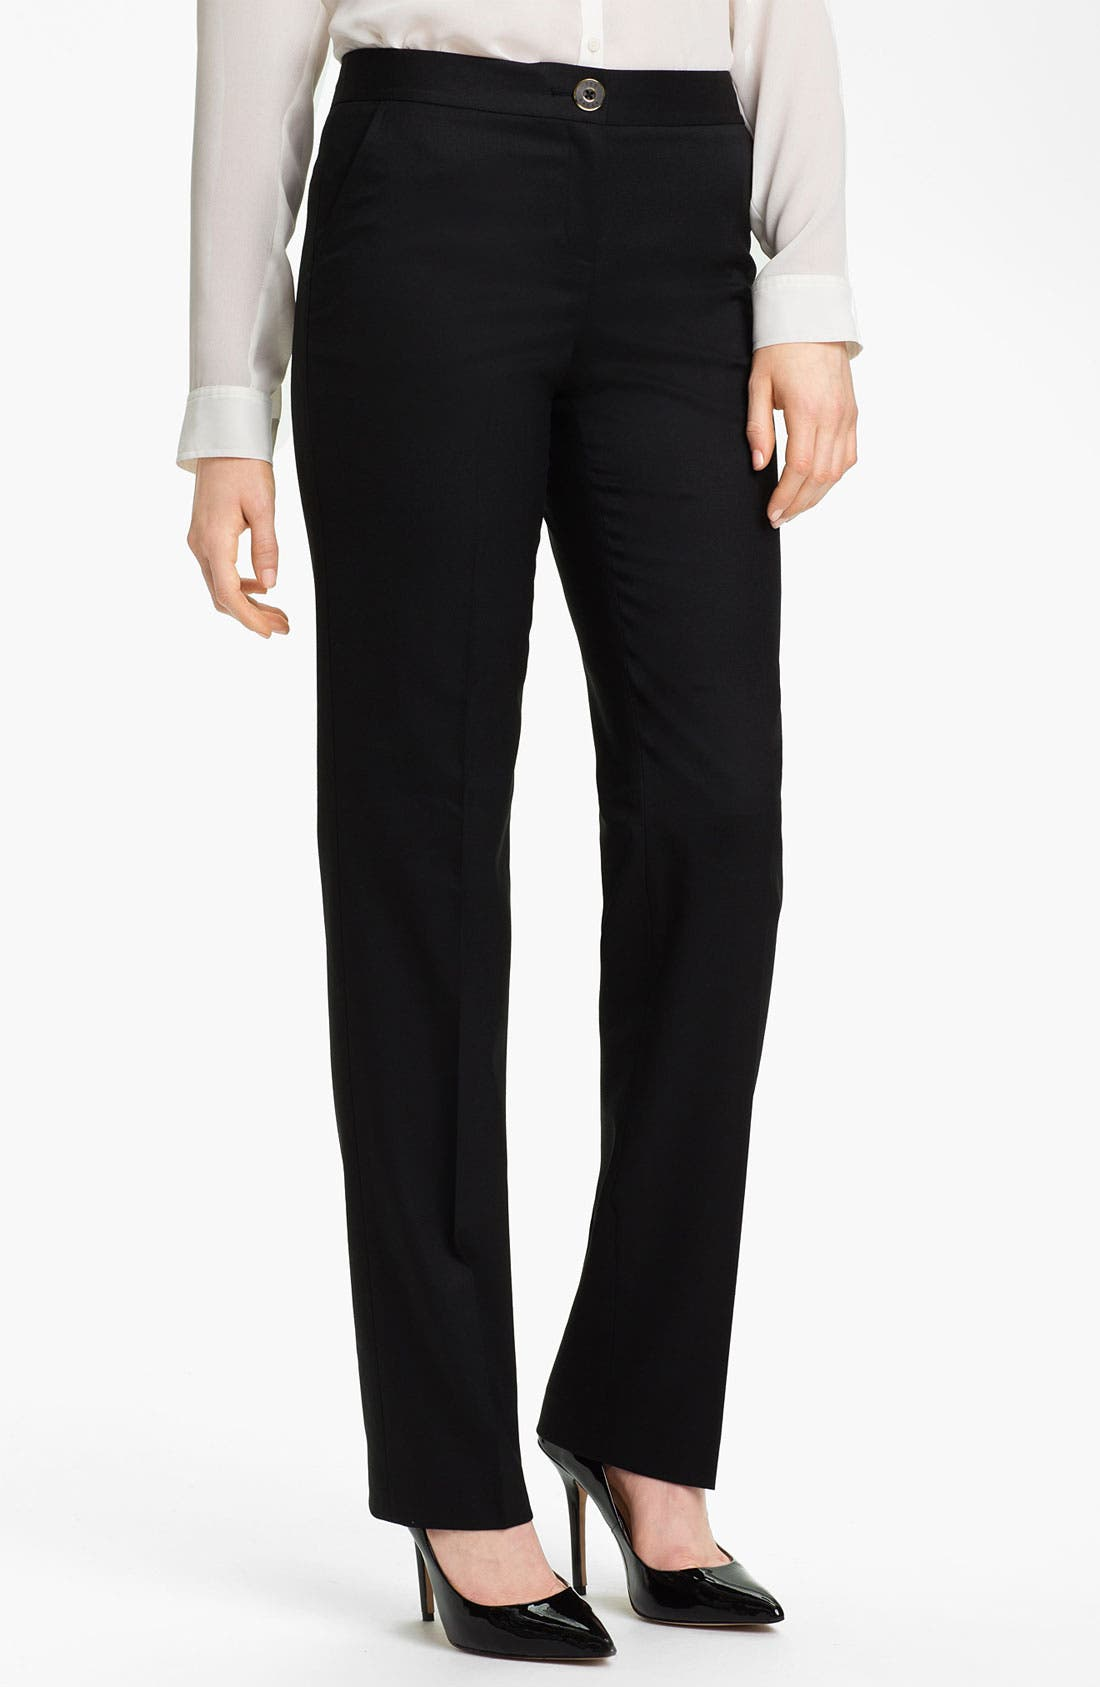 Alternate Image 1 Selected - Ted Baker London 'Miakot' Trousers